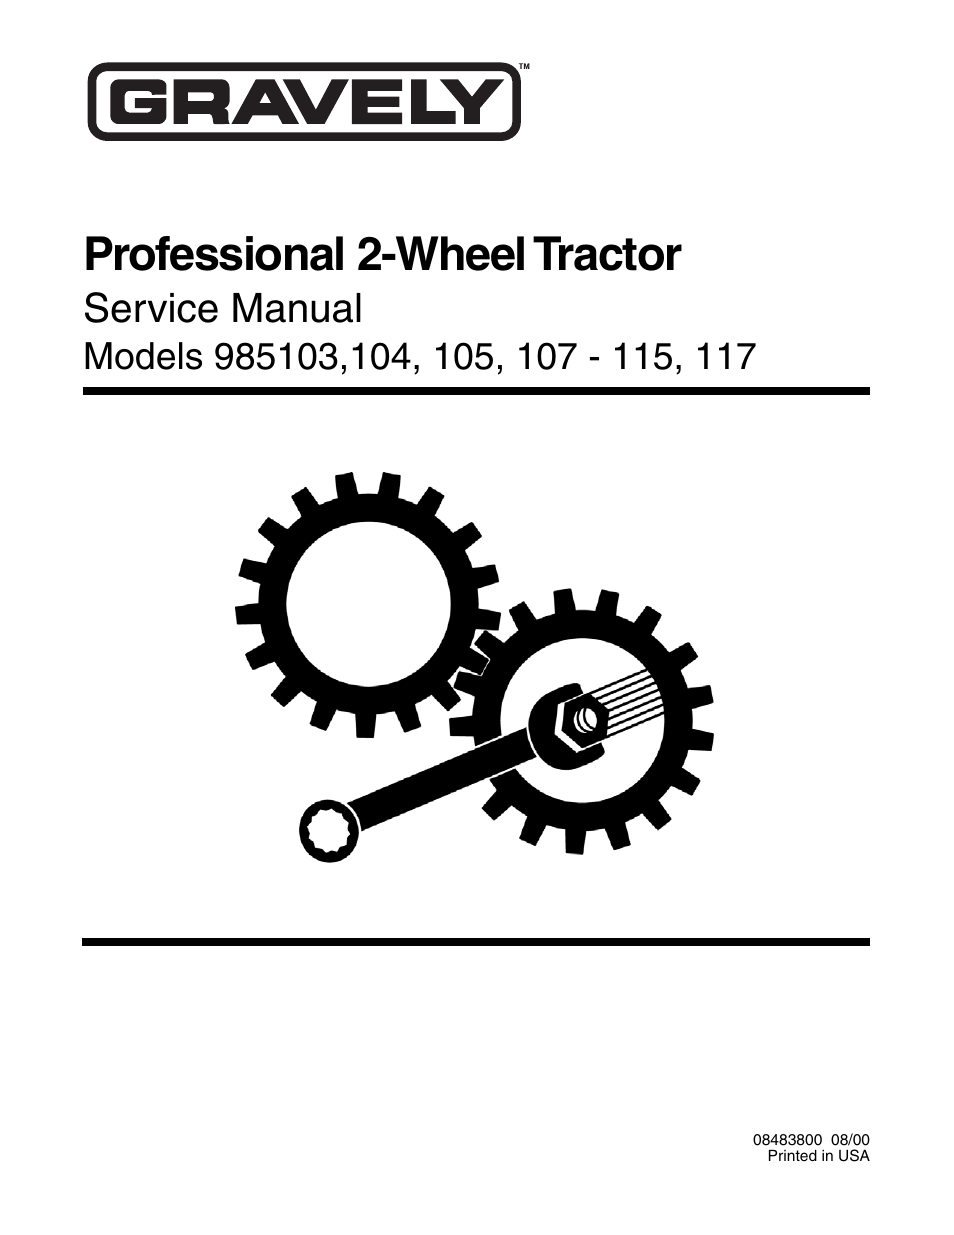 gravely 985103 user manual 44 pages also for 985112 985108 rh manualsdir com gravely 7.6 convertible service manual gravely commercial 10a service manual